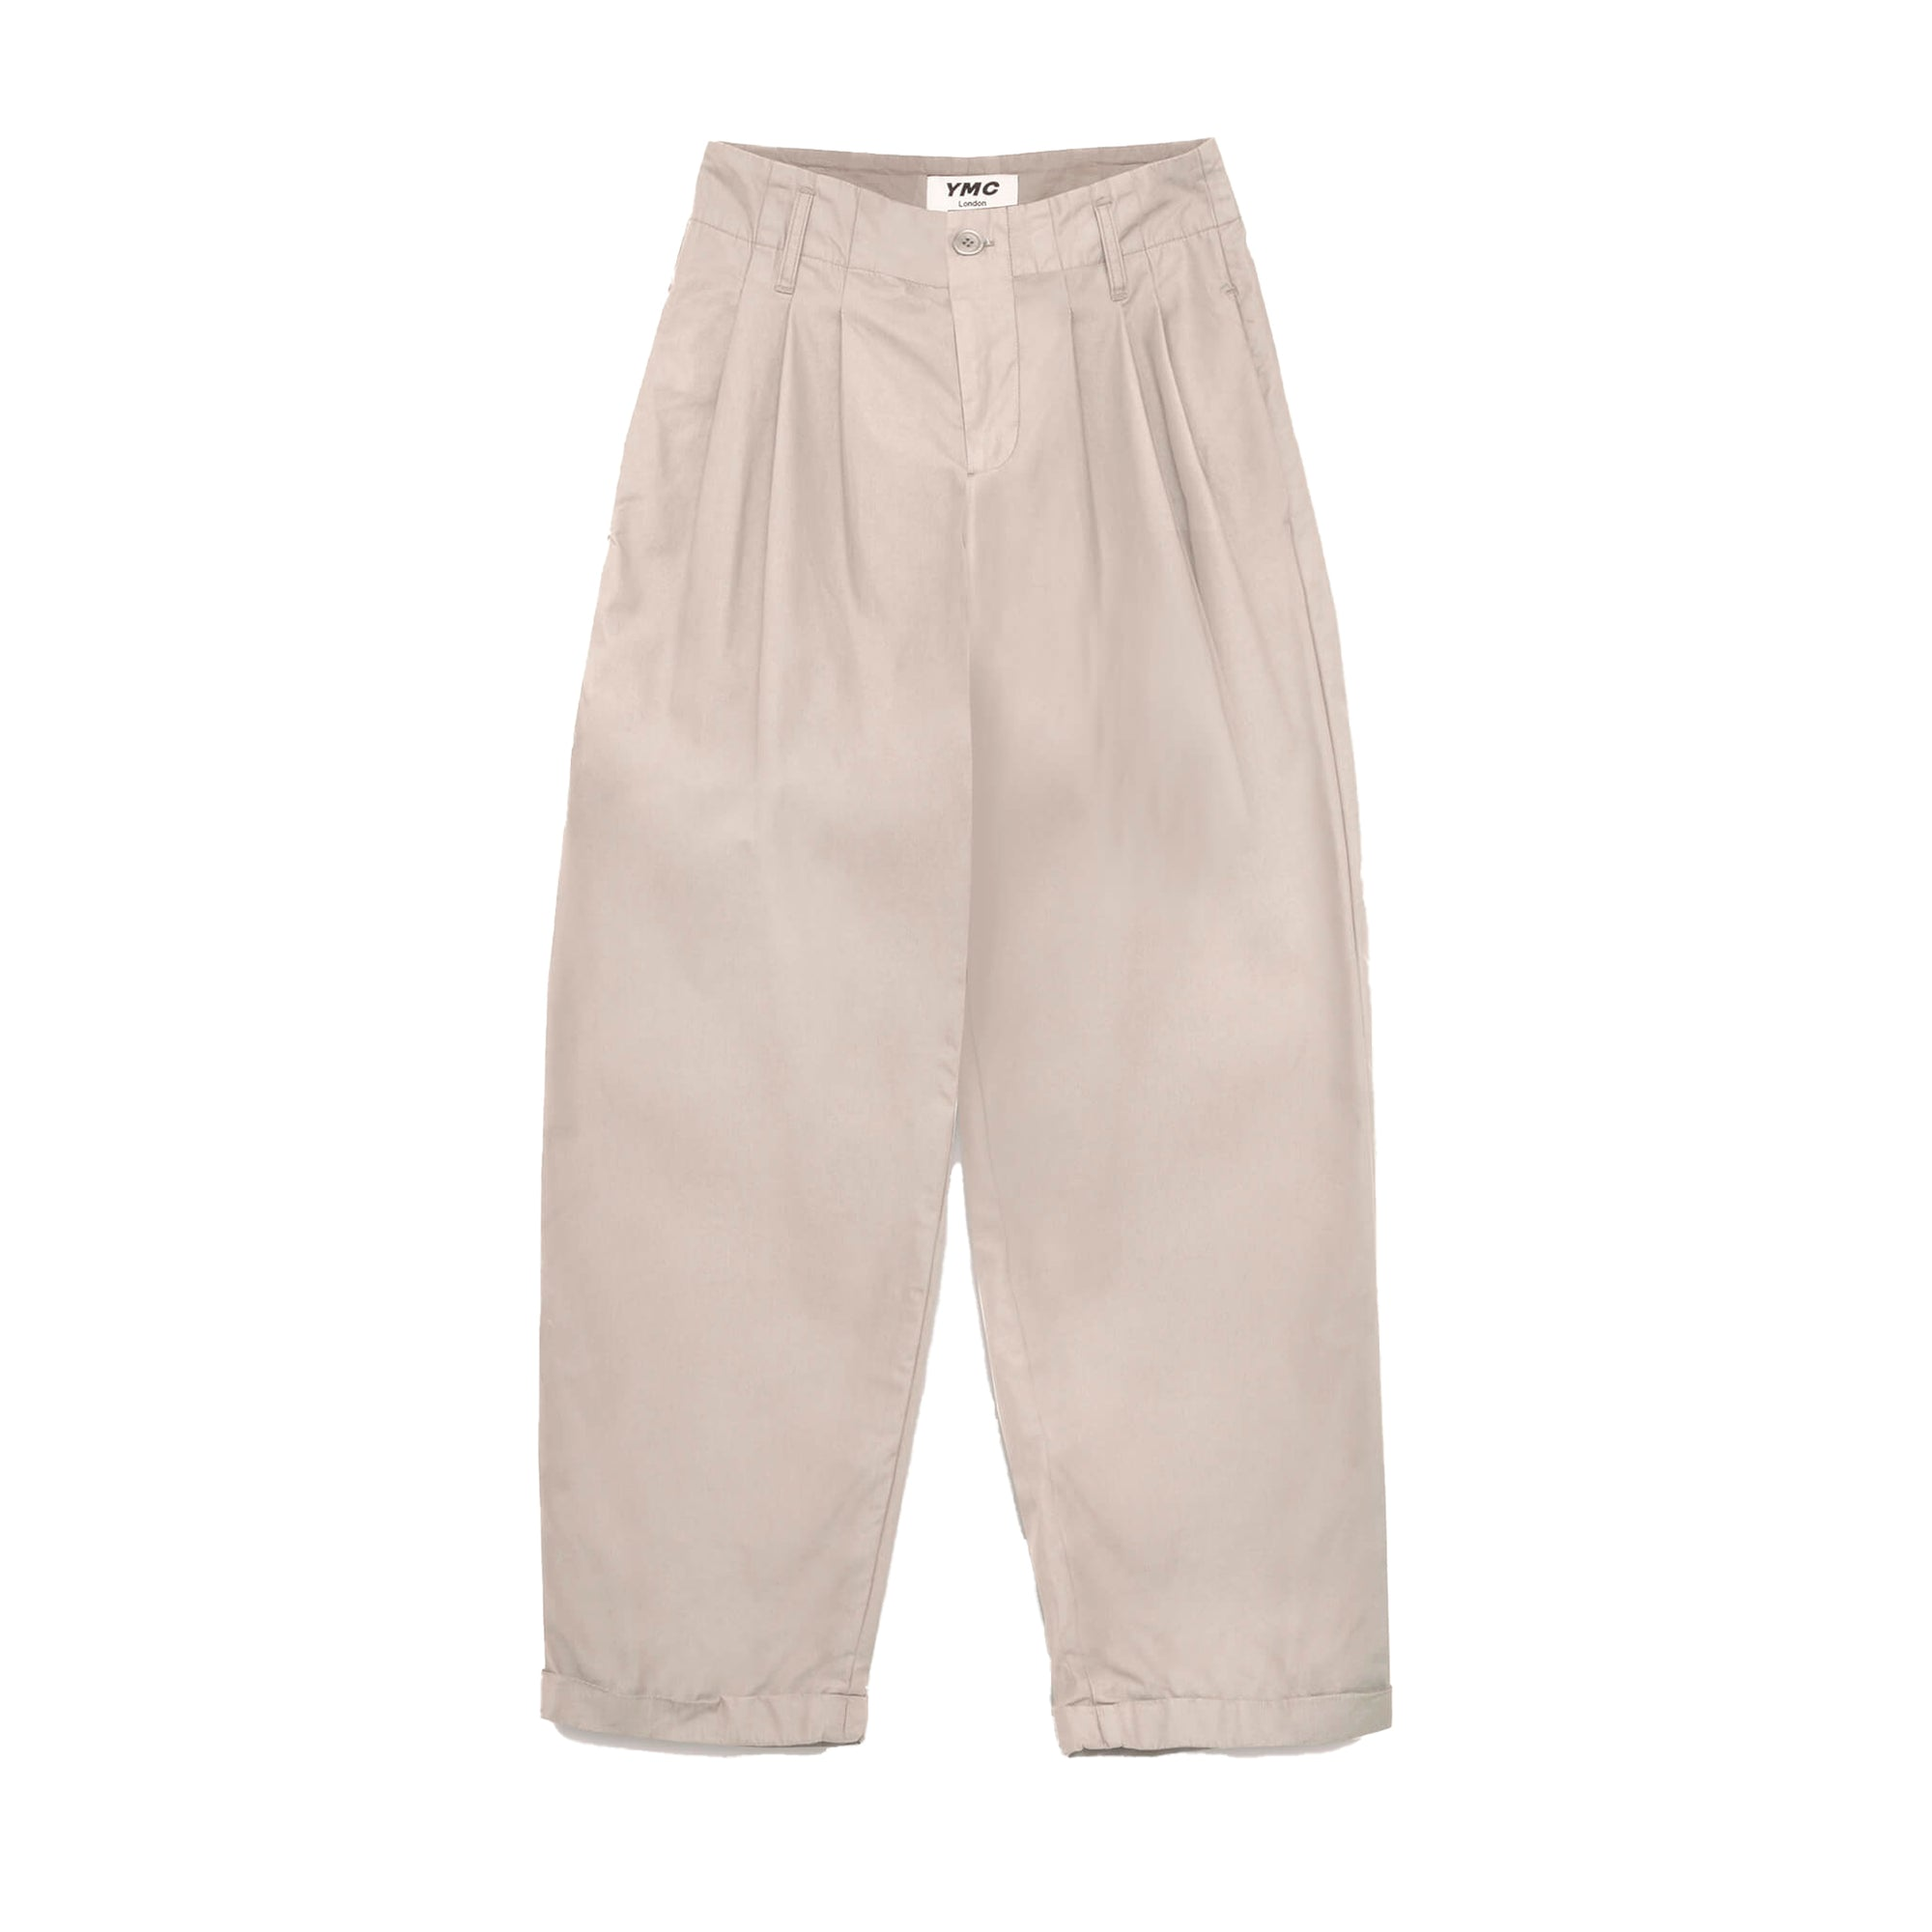 YMC Womens Keaton Trousers: Stone - The Union Project